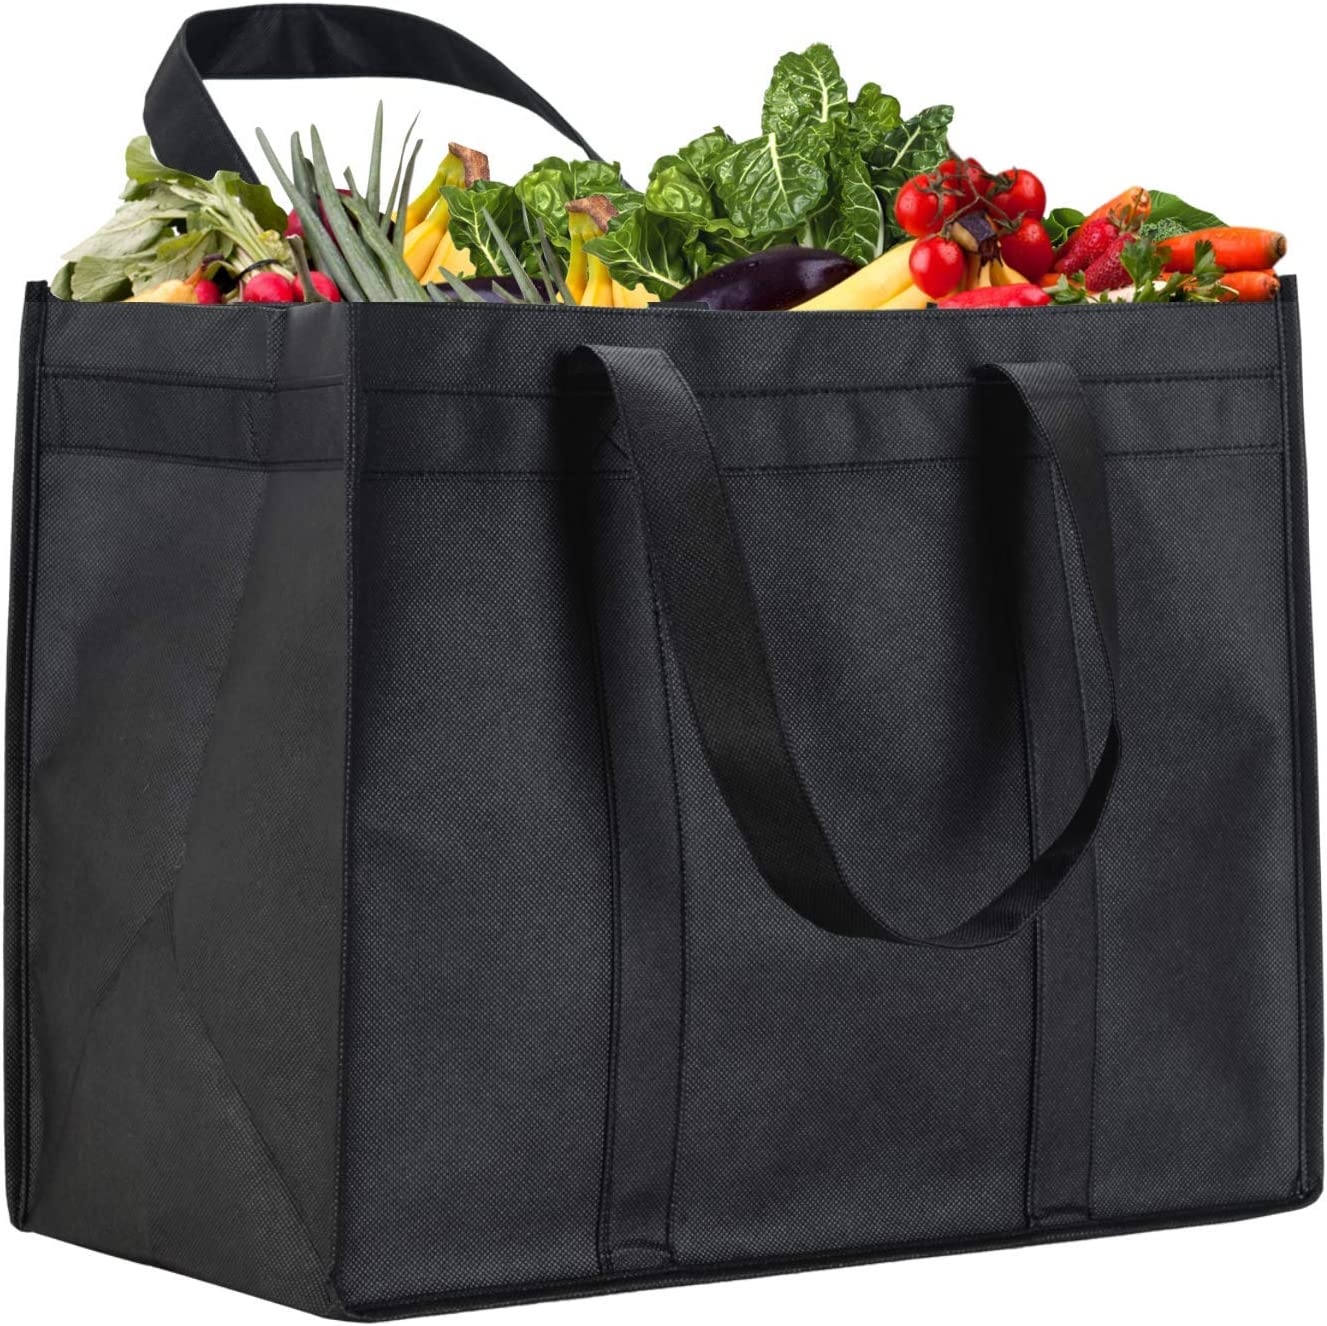 NEW Reusable Shopping Grocery Bags 6 PACK Eco Large Heavy Duty Washable Durable